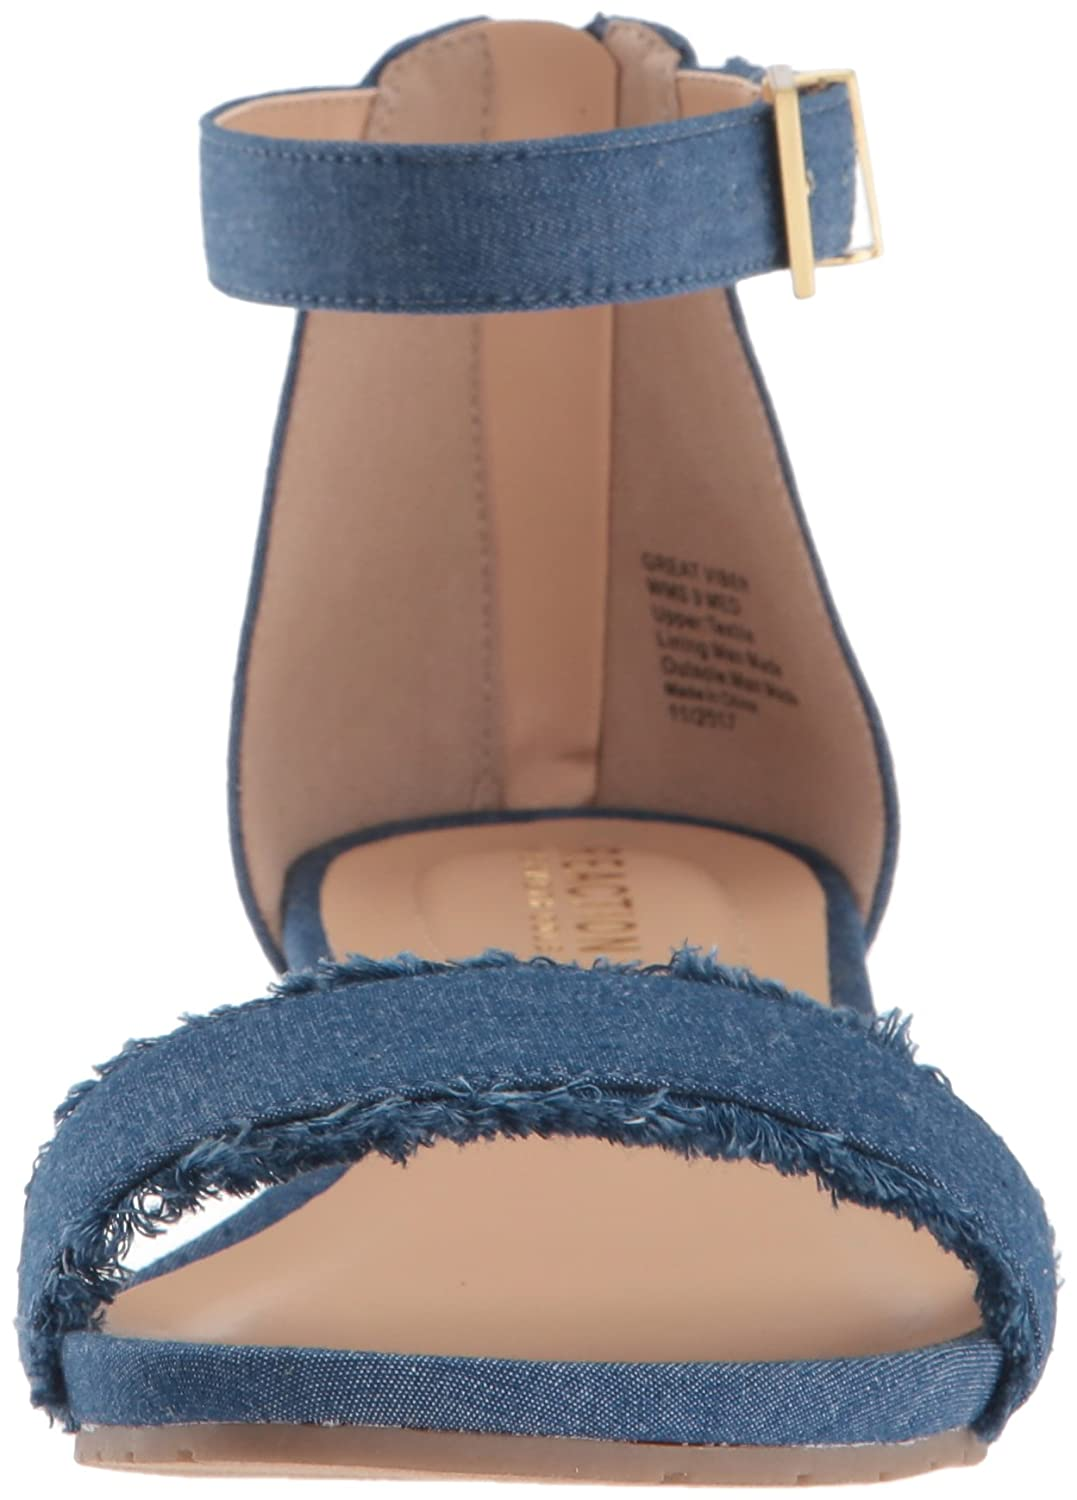 Kenneth Cole REACTION Womens Great Viber 2 Piece Wedge Sandal Wedge Sandal